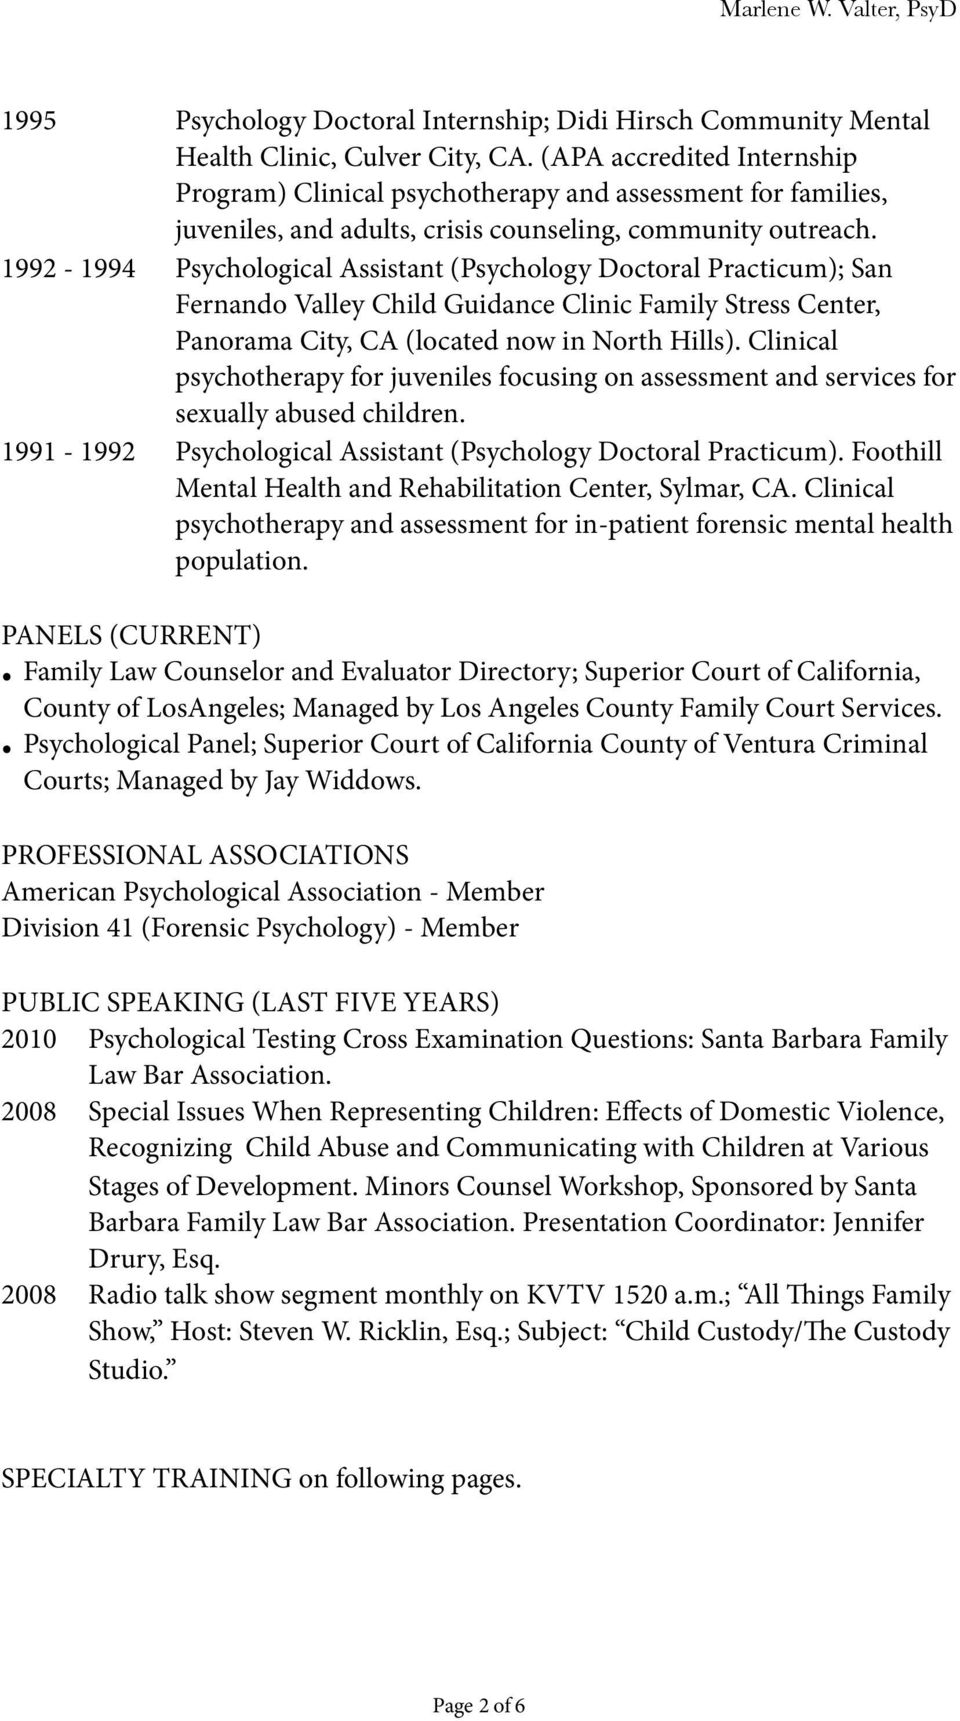 1992-1994 Psychological Assistant (Psychology Doctoral Practicum); San Fernando Valley Child Guidance Clinic Family Stress Center, Panorama City, CA (located now in North Hills).